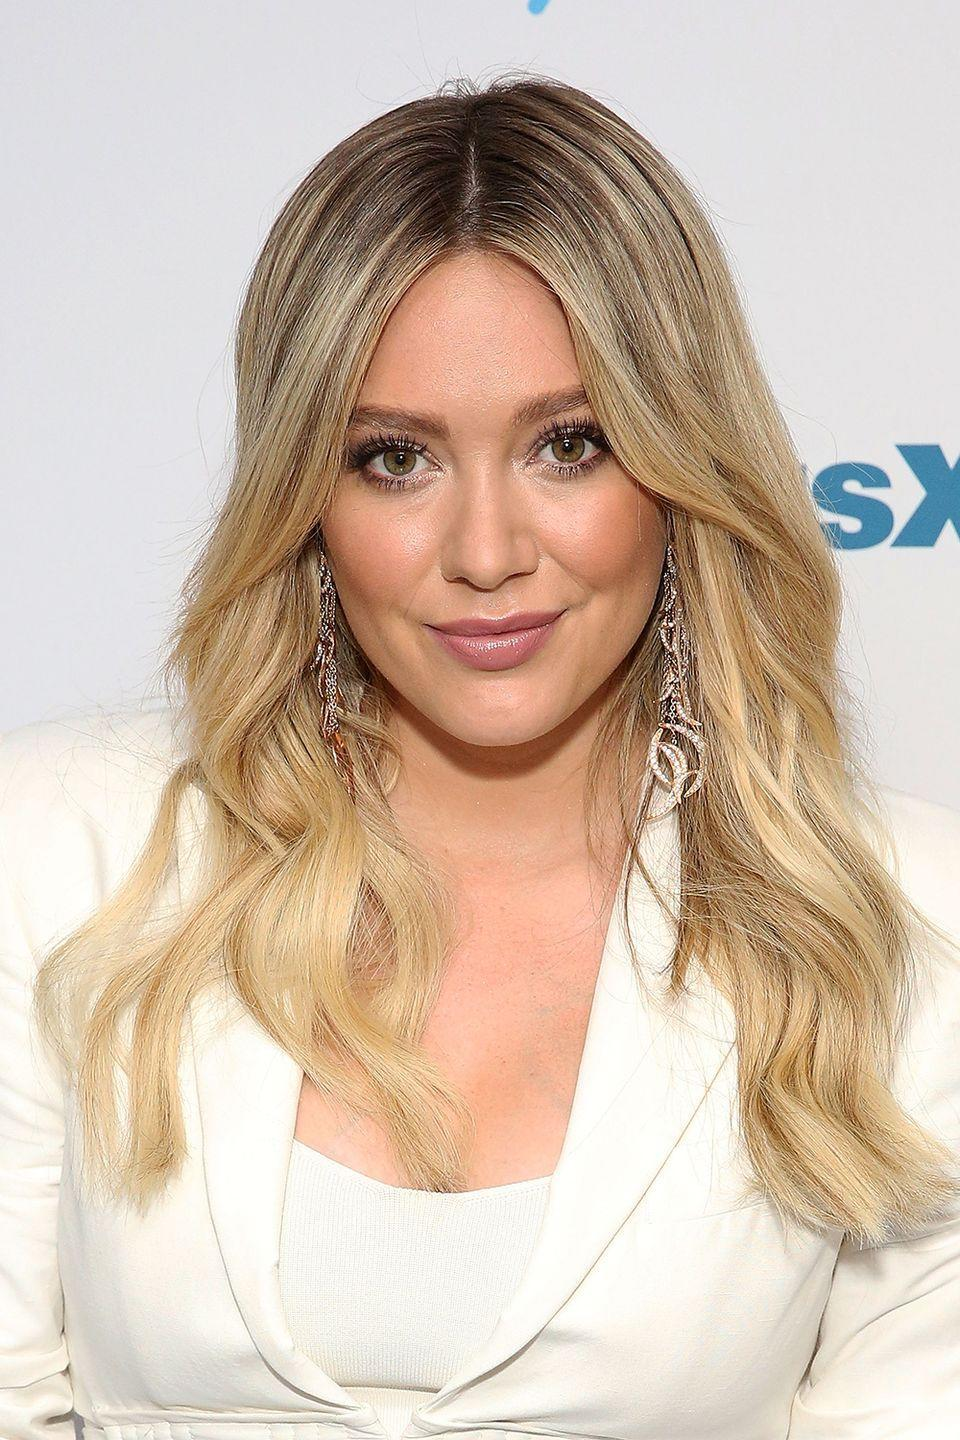 """<p>Hilary Duff has had a lot of feelings about pre-marital sex—for one she says <a href=""""http://www.foxnews.com/entertainment/slideshow/2017/08/08/celebrities-who-saved-themselves-for-marriage.html#/slide/hilary-duff"""" rel=""""nofollow noopener"""" target=""""_blank"""" data-ylk=""""slk:people don't really make it sound that special"""" class=""""link rapid-noclick-resp"""">people don't really make it sound that special</a>. And that's one of the reasons she waited until she said """"I do.""""</p><p>""""It's harder having a boyfriend who's older because people just assume. But [virginity] is definitely something I like about myself. It doesn't mean I haven't thought about sex, because everyone I know has had it and you want to fit in,"""" she told <em>Elle</em> magazine in 2006. """"But when they talk about it, it doesn't sound special, like you would imagine it to be. It just seems like everybody has slept with each other—you know what I mean?"""" </p>"""